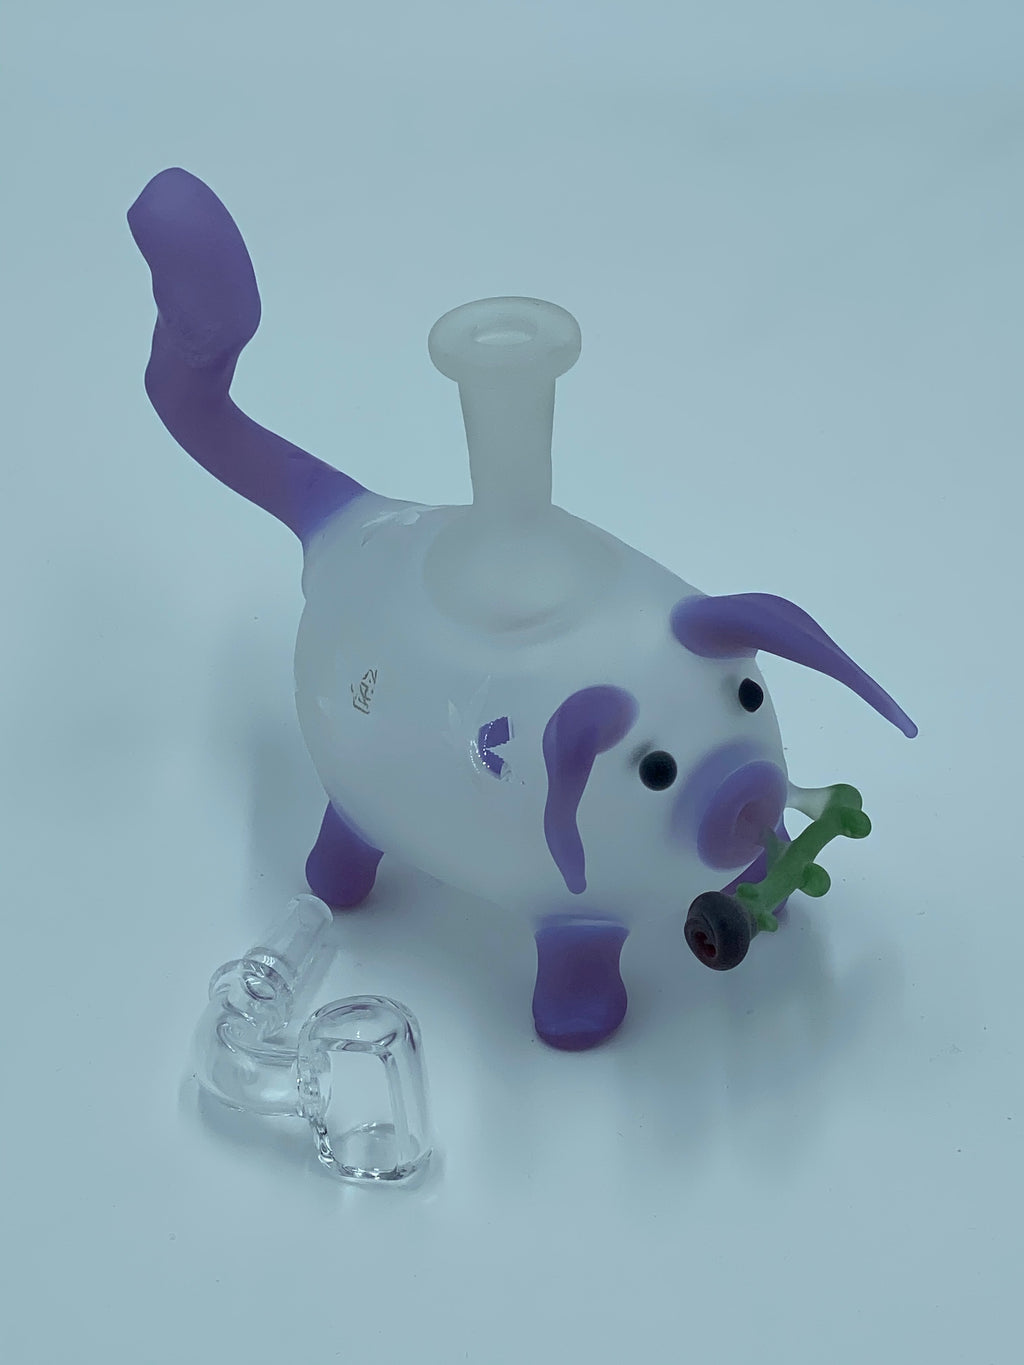 KOBB GLASS FROSTED PIG RIG - Smoke Country - Land of the artistic glass blown bongs